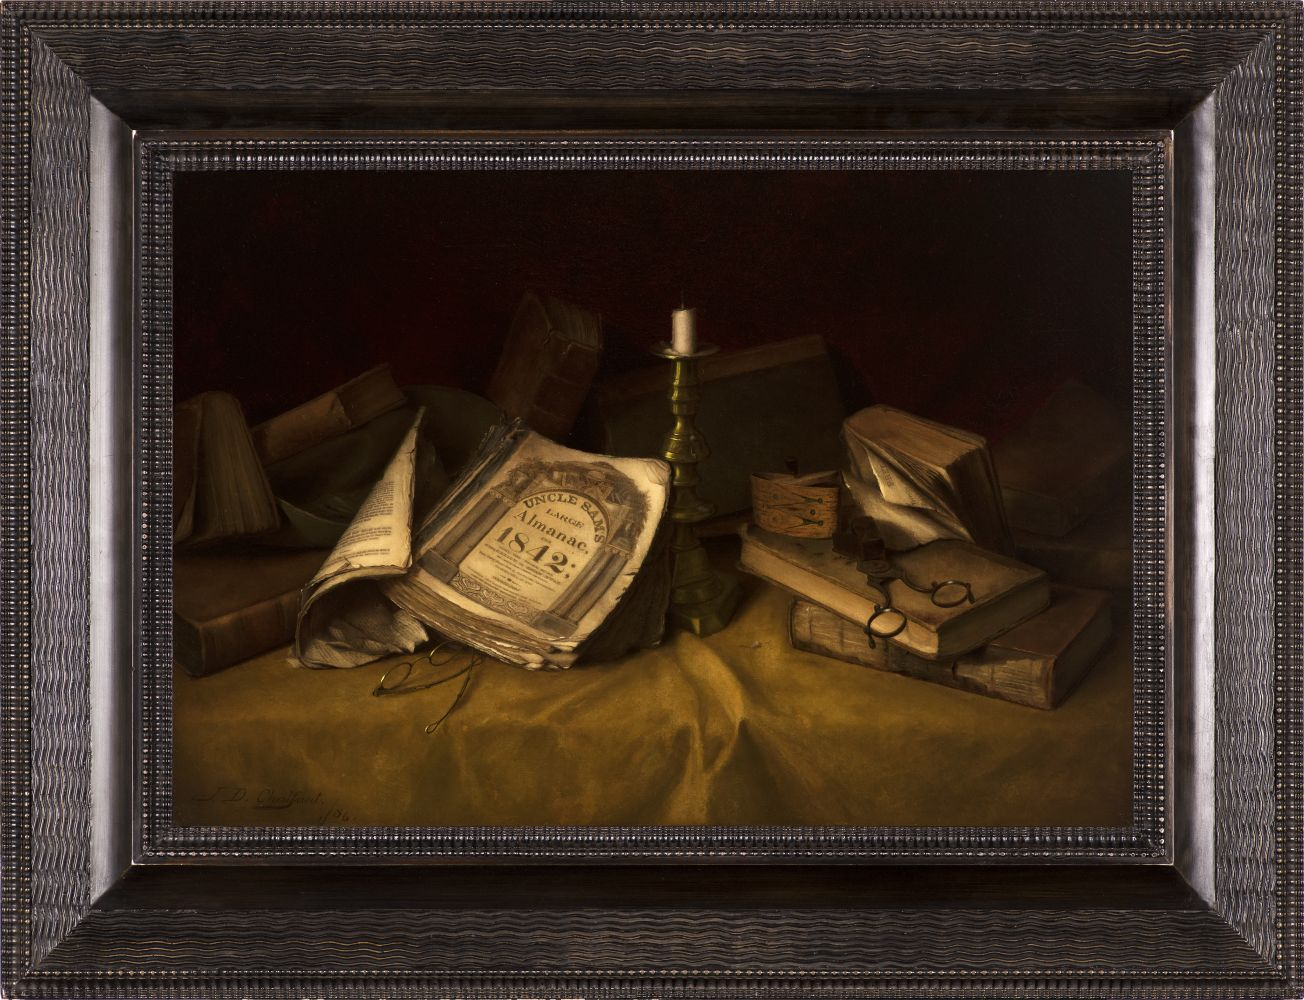 Jefferson David Chalfant (1856–1931), The Old Almanac, 1886, oil on canvas, 17 1/2 x 25 5/8 in.,  signed and dated lower left: J. D. Chalfant 1886 (framed)